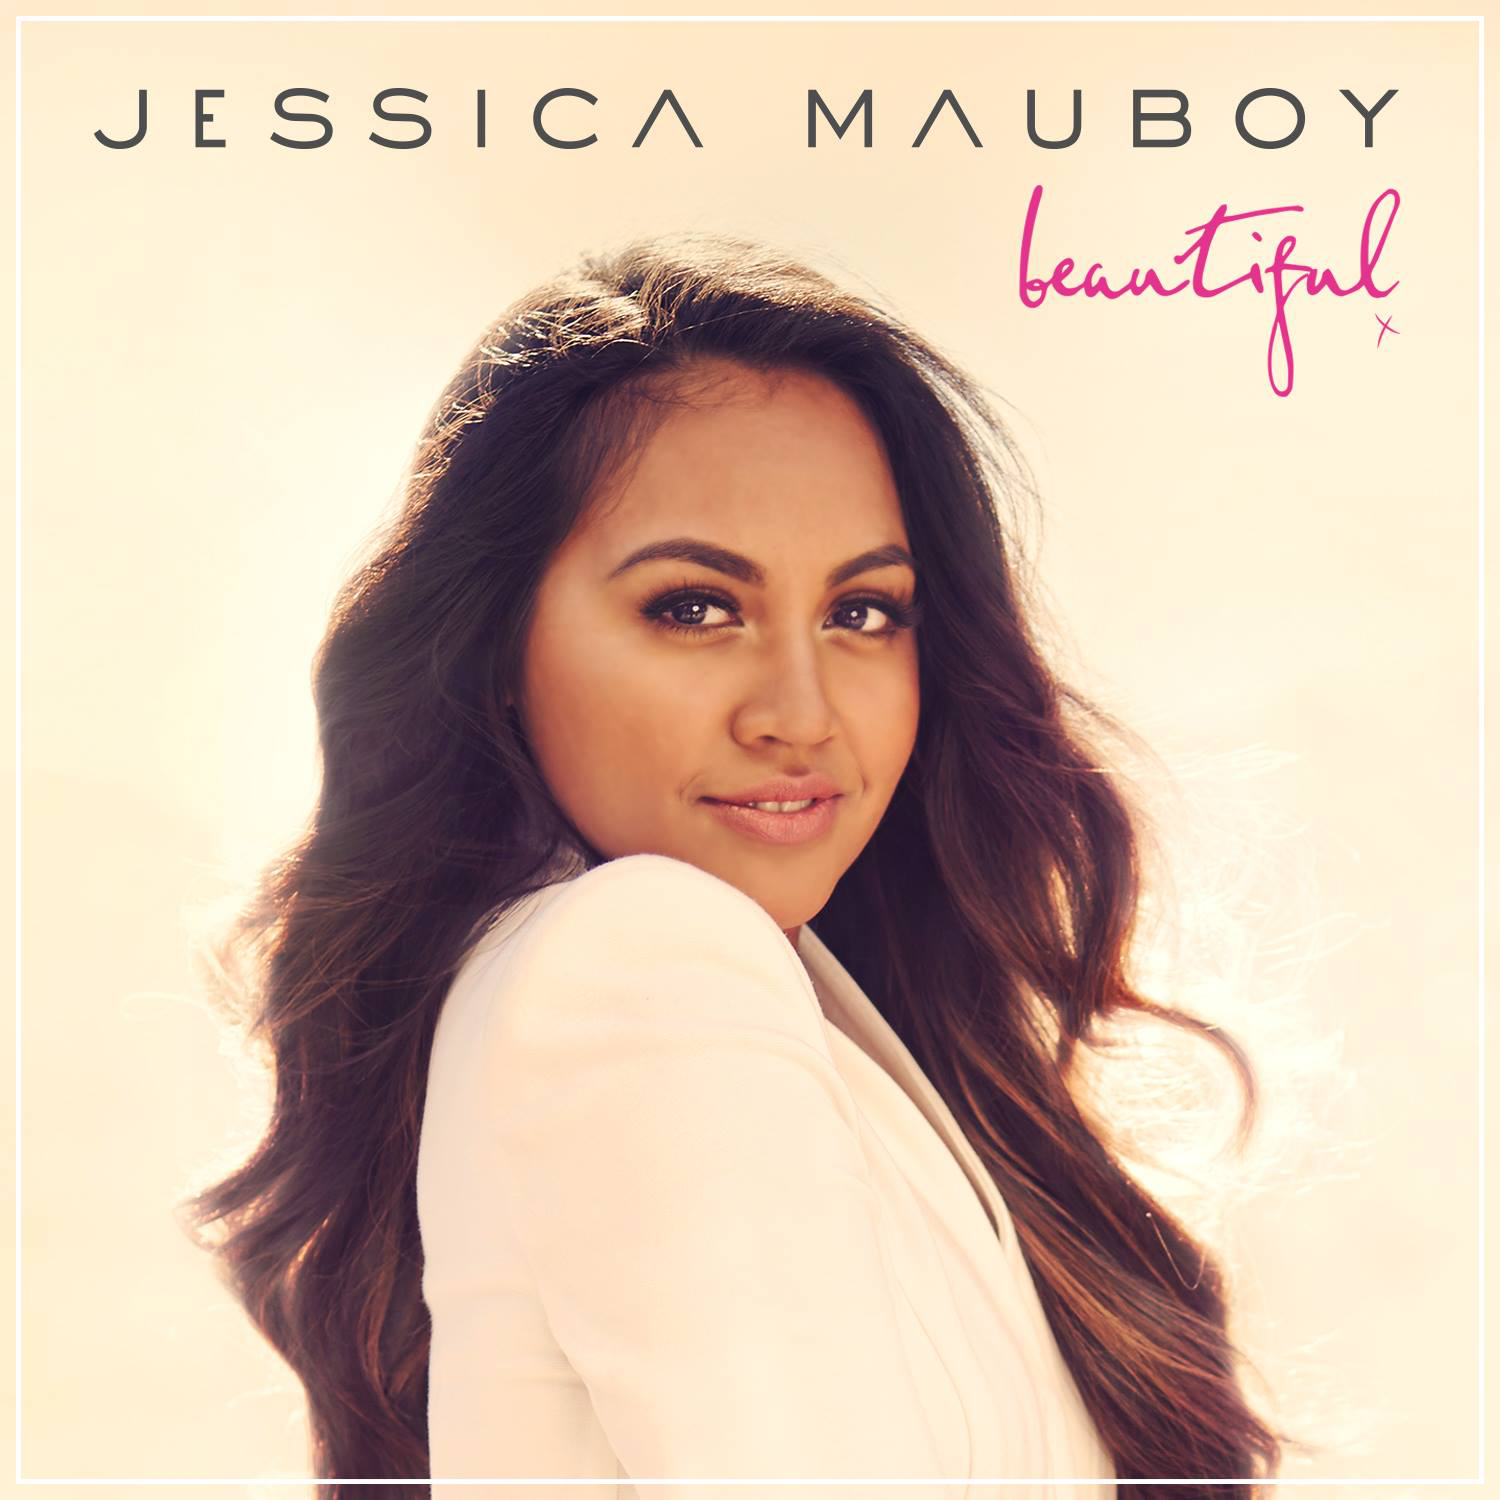 Jessica Mauboy Beautiful.jpg